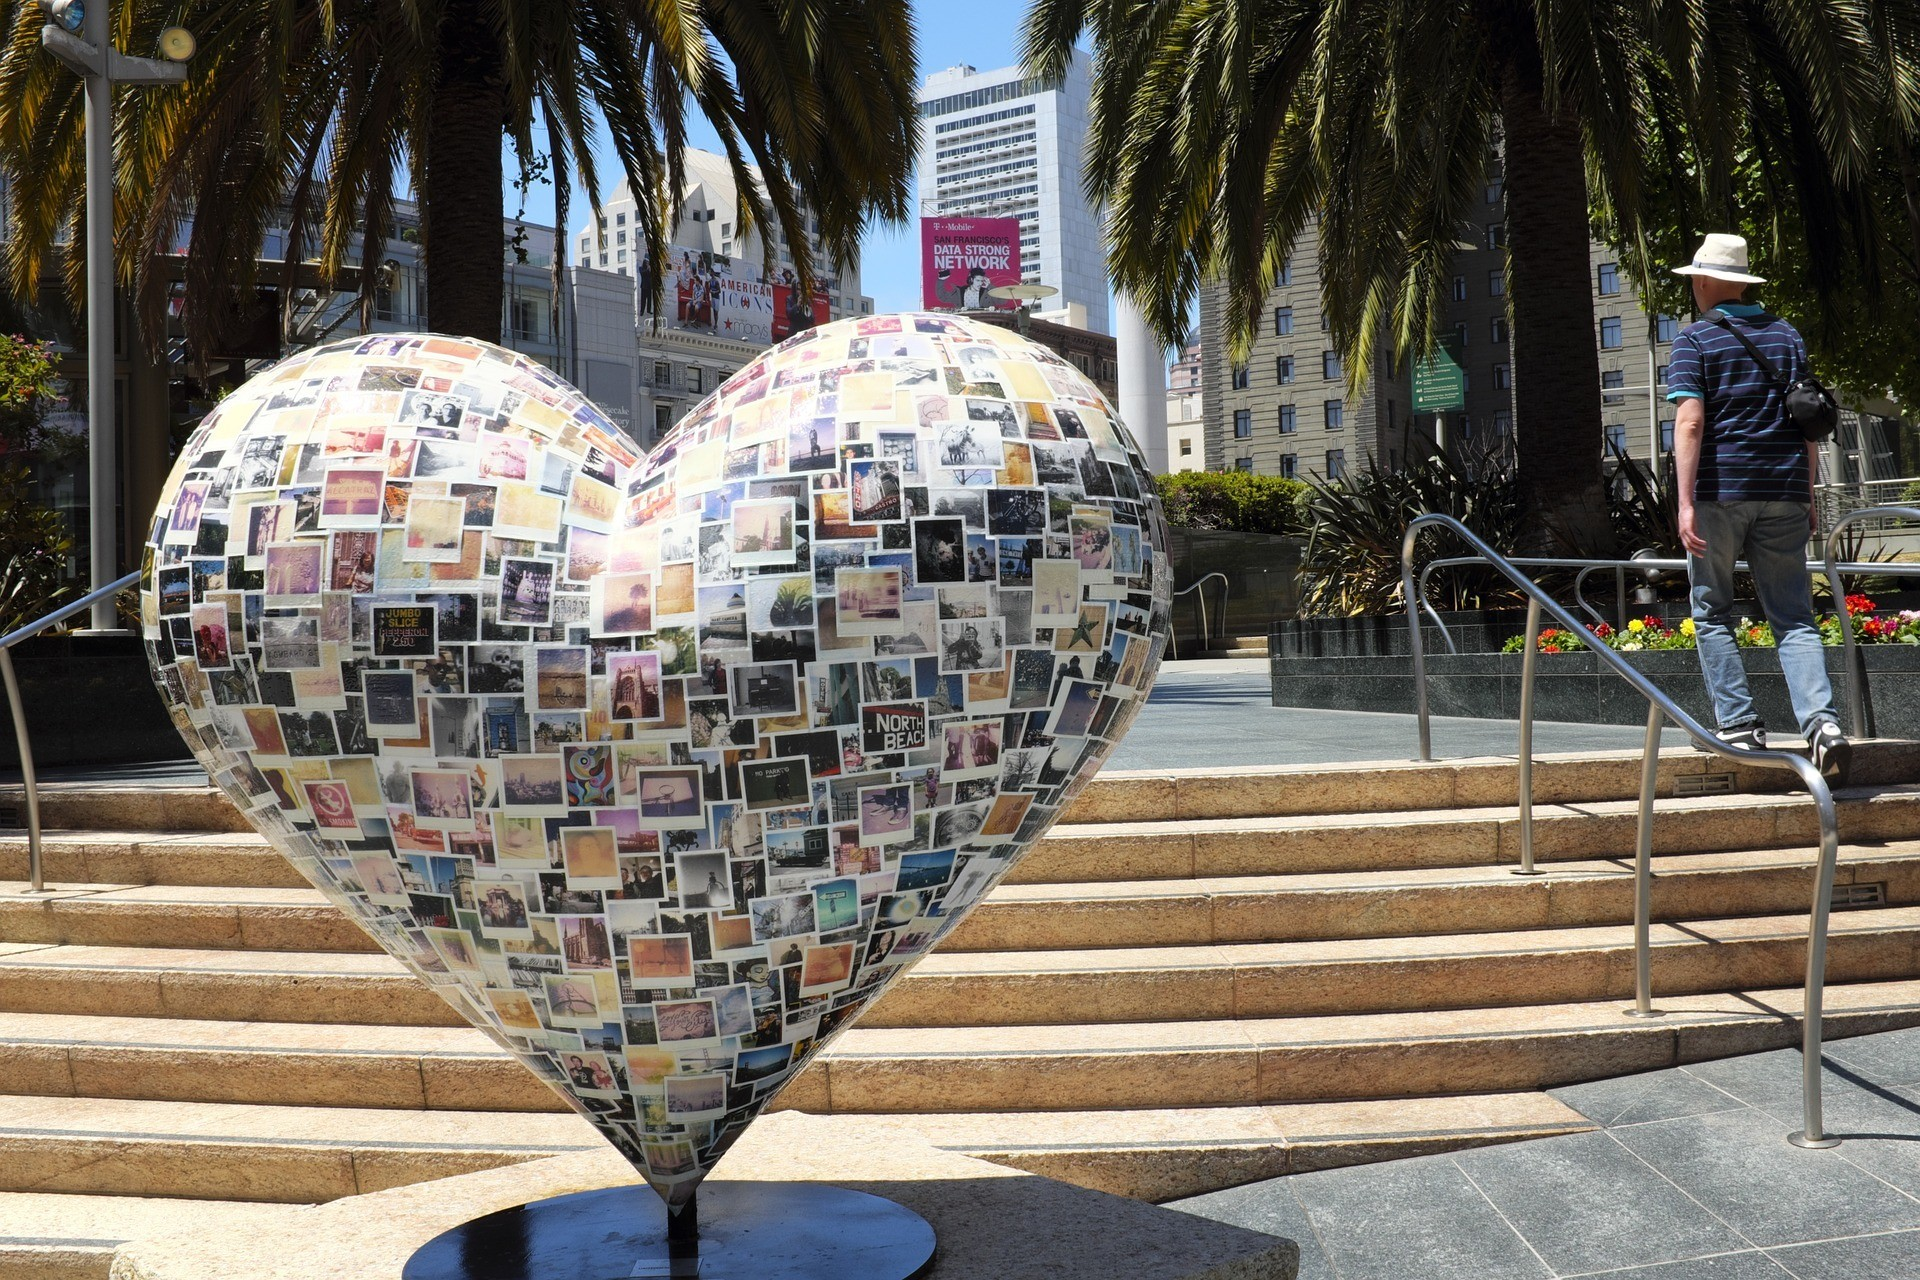 Union Square - where to stay in San Francisco when visiting for the first time